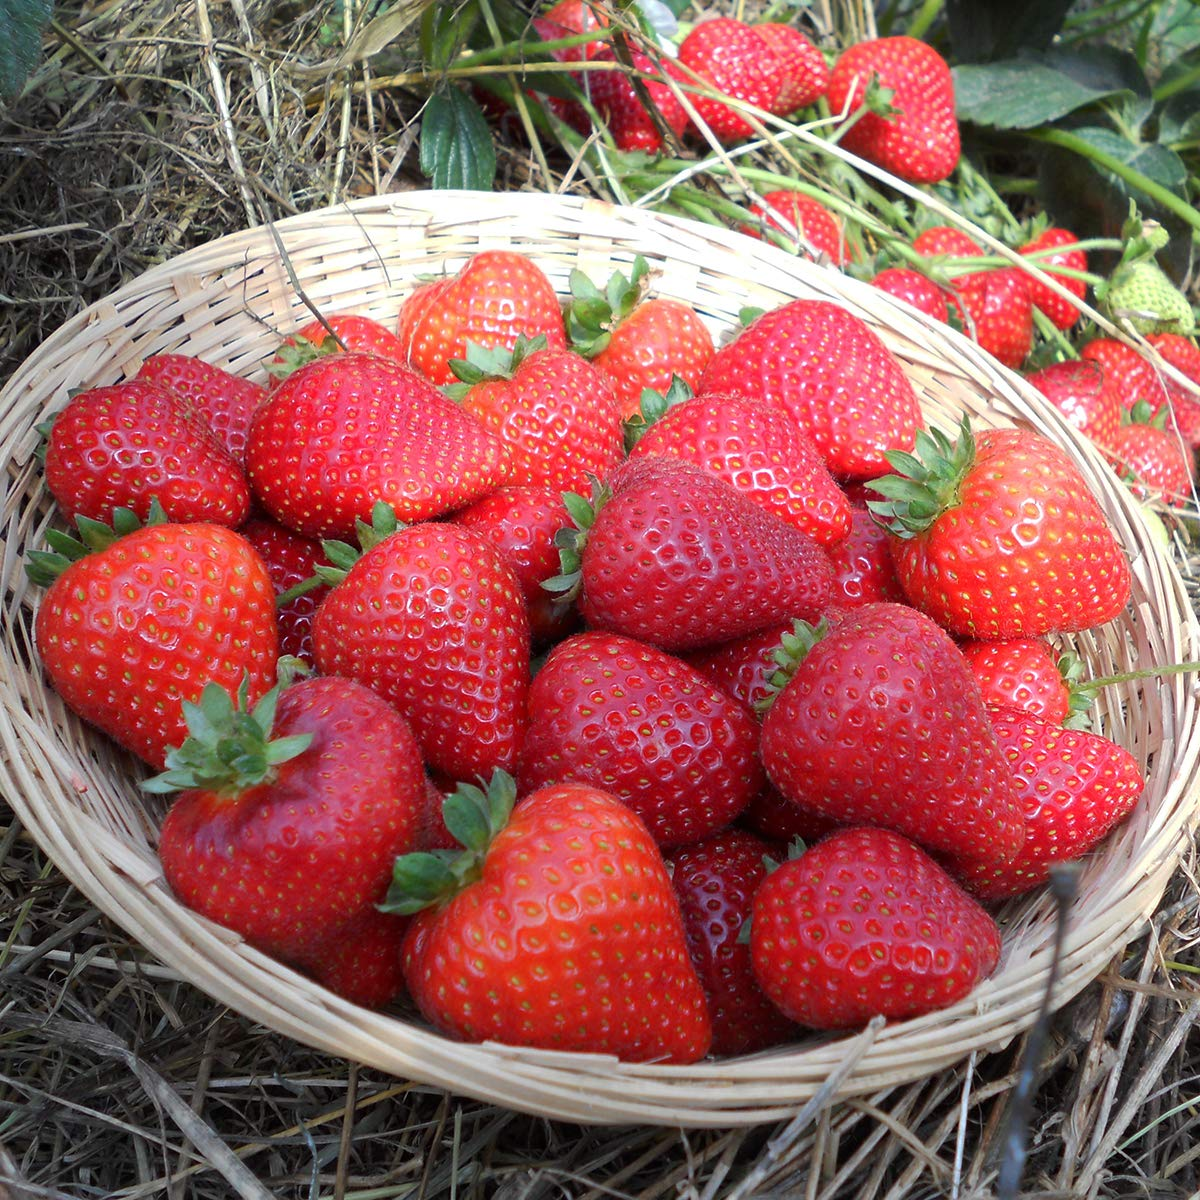 Burpee 'Sweet Kiss' Ever-Bearing Strawberry shipped as 25 BARE ROOT PLANTS by Burpee (Image #1)